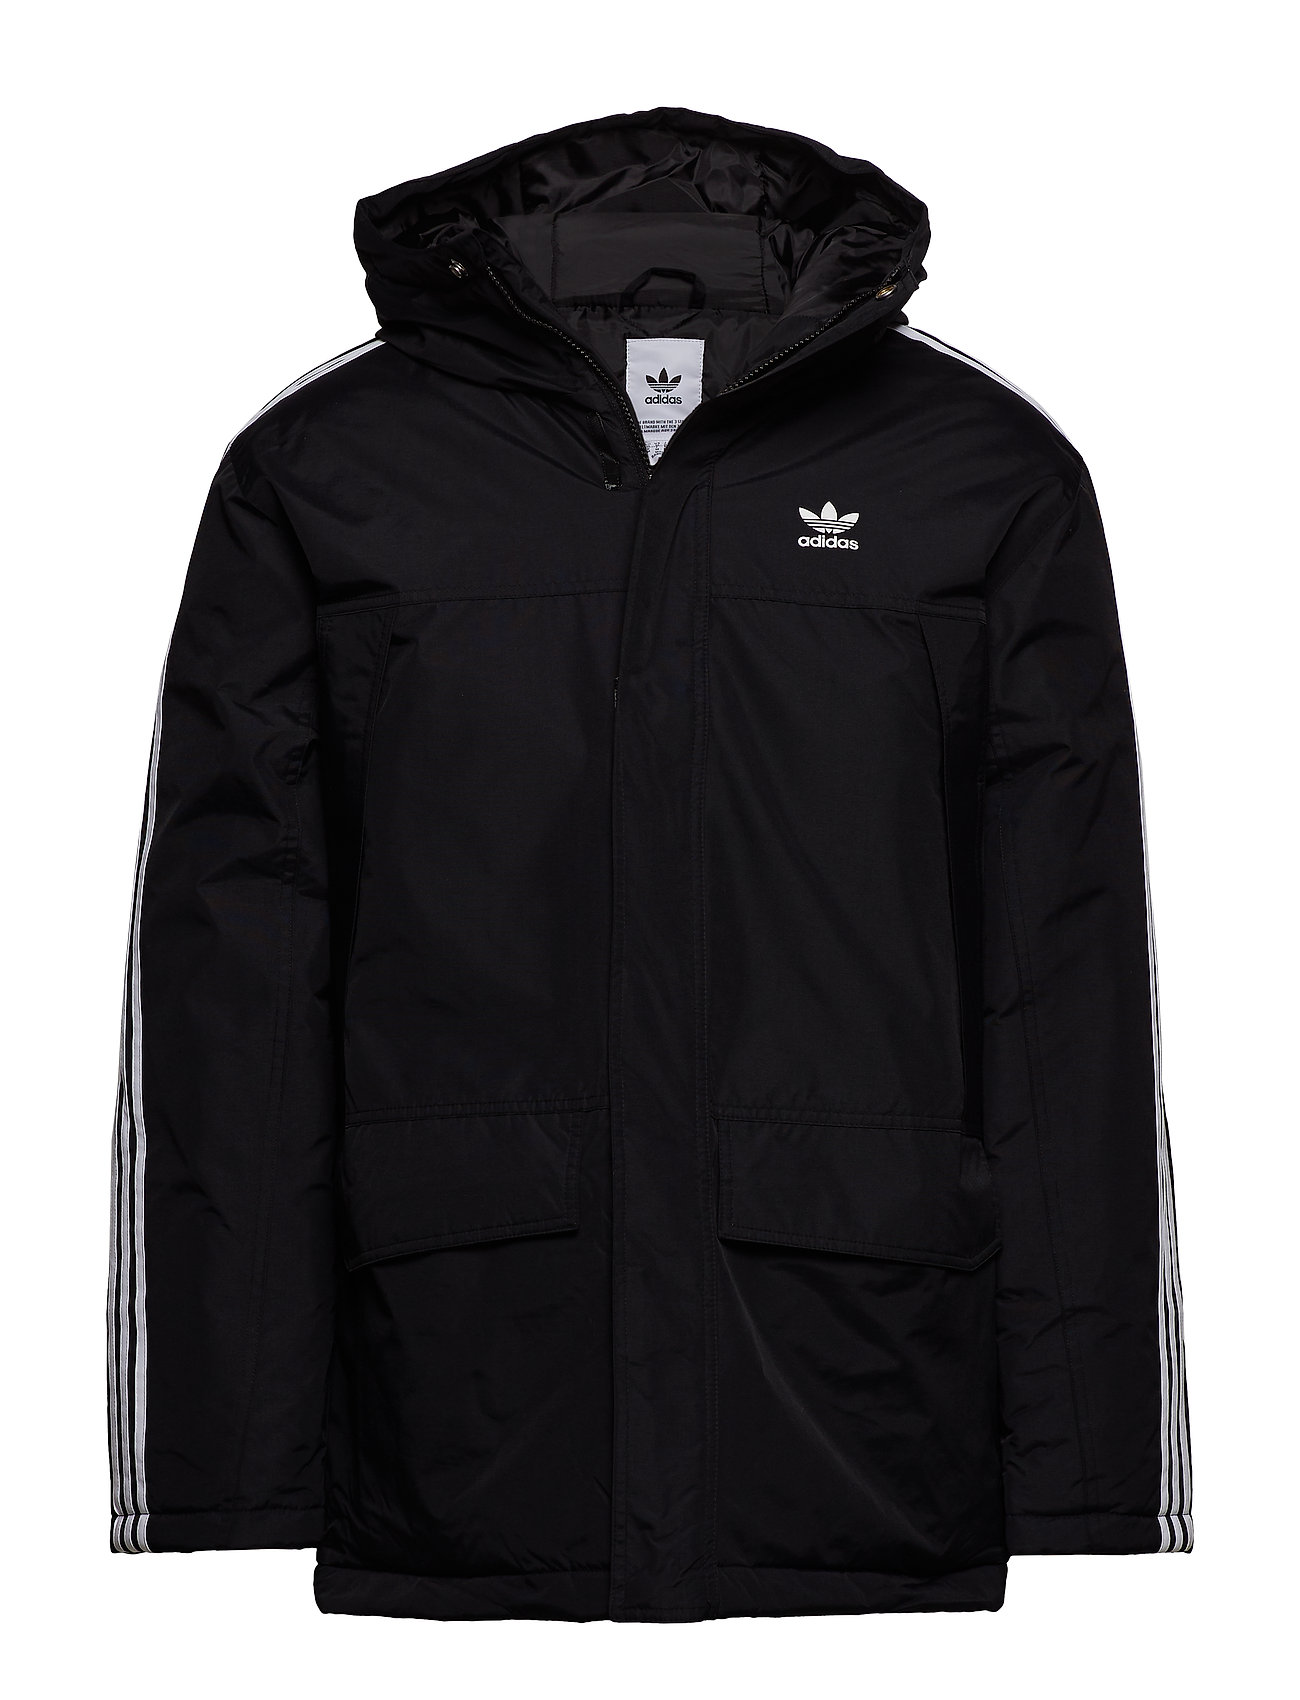 adidas Originals PARKA PADDE - BLACK